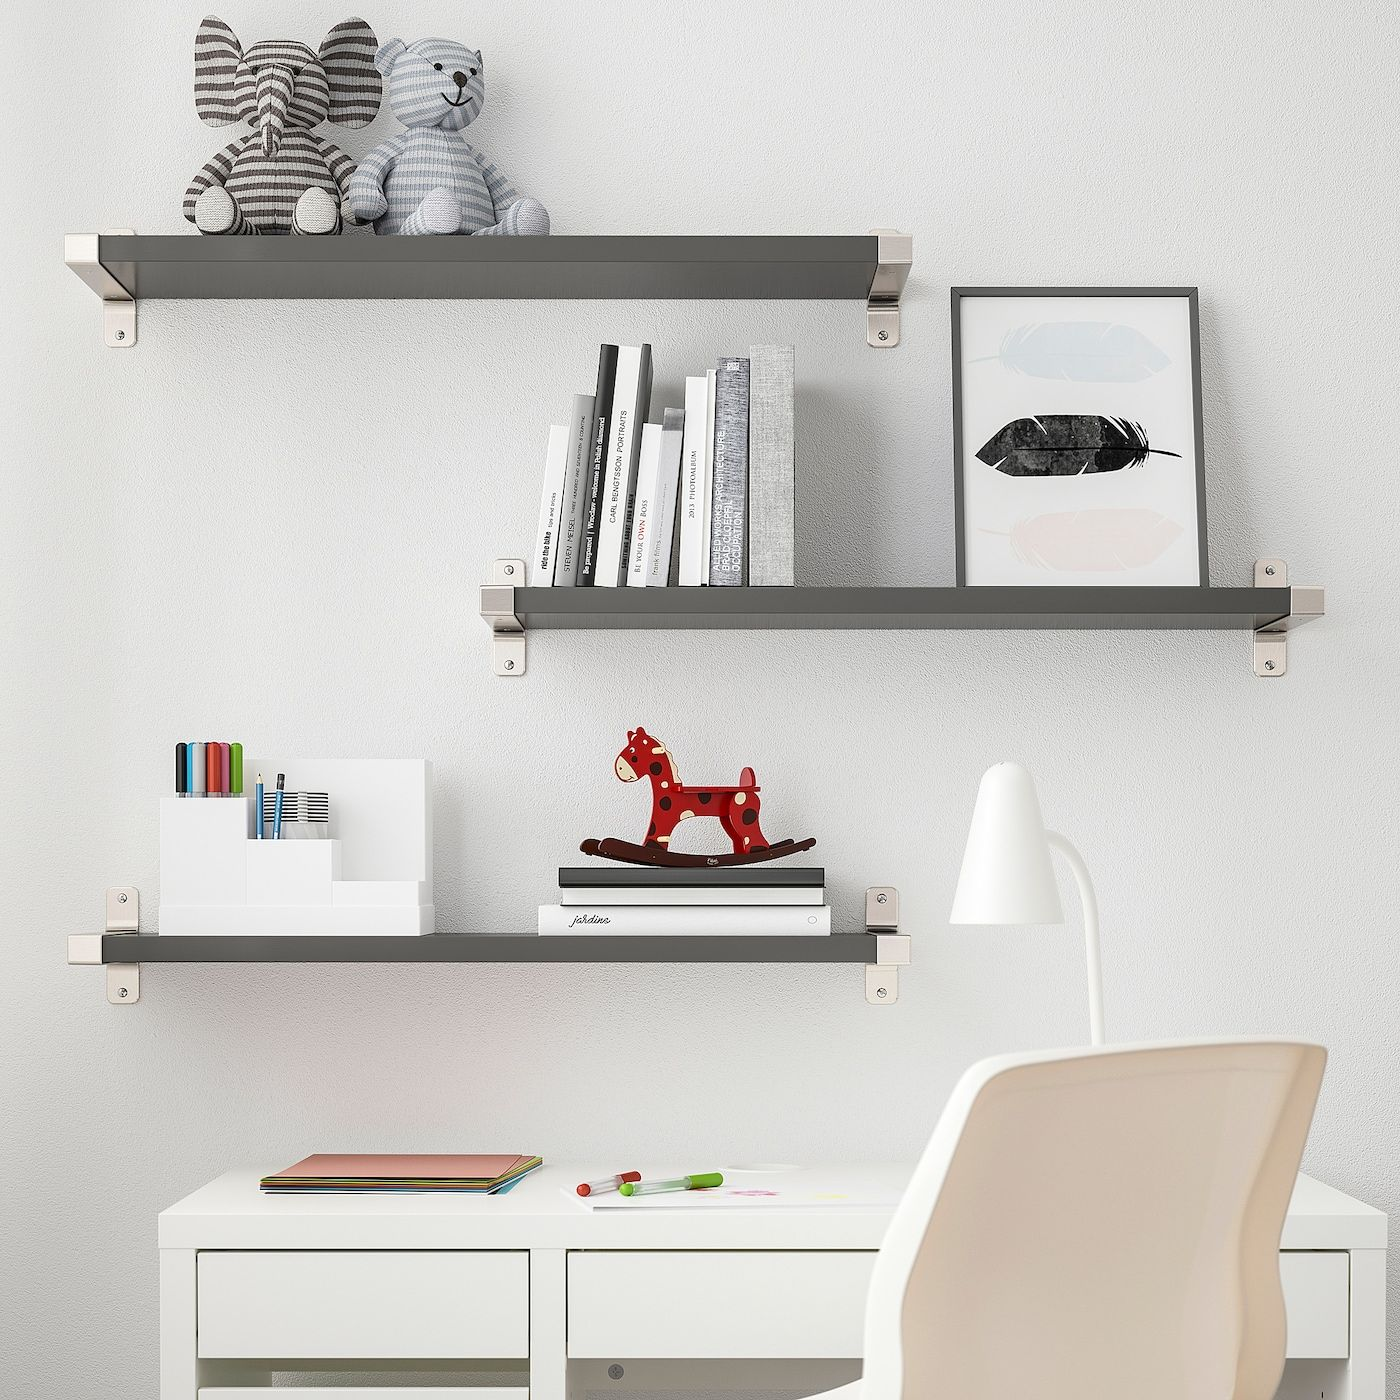 Wall To Wall Shelves bergshult / granhult wall shelf combination - dark gray